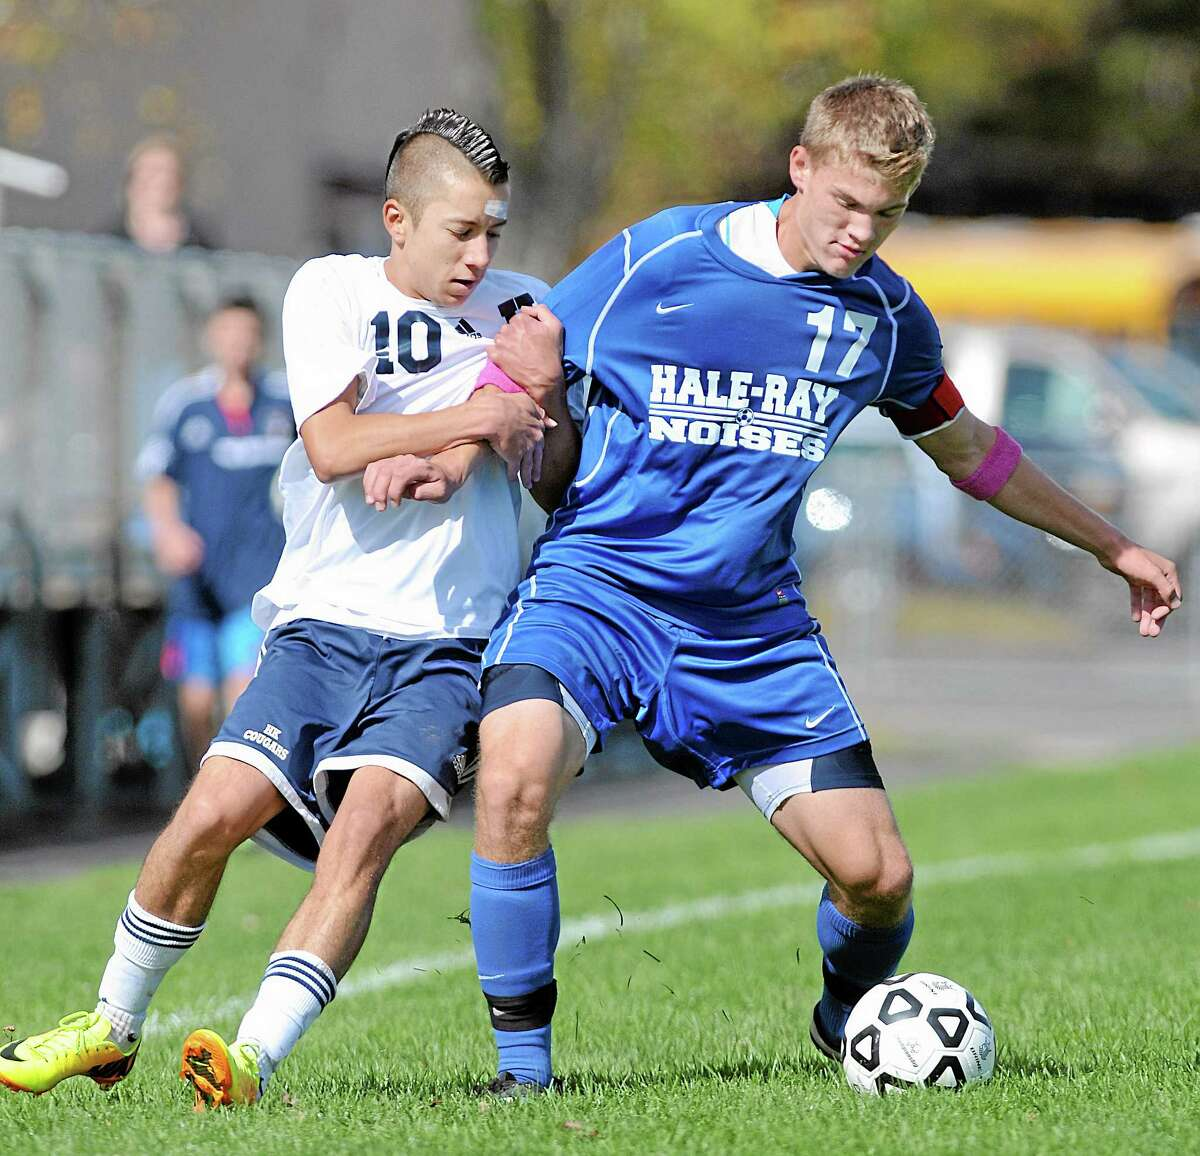 Haddam-Killingworth forward Liam Blancaflor defends Hale-Ray's Zack Wright in the first half of Monday afternoon's game. The Little Noises upset the Cougars, chalking up a 2-1 win in Higganum.